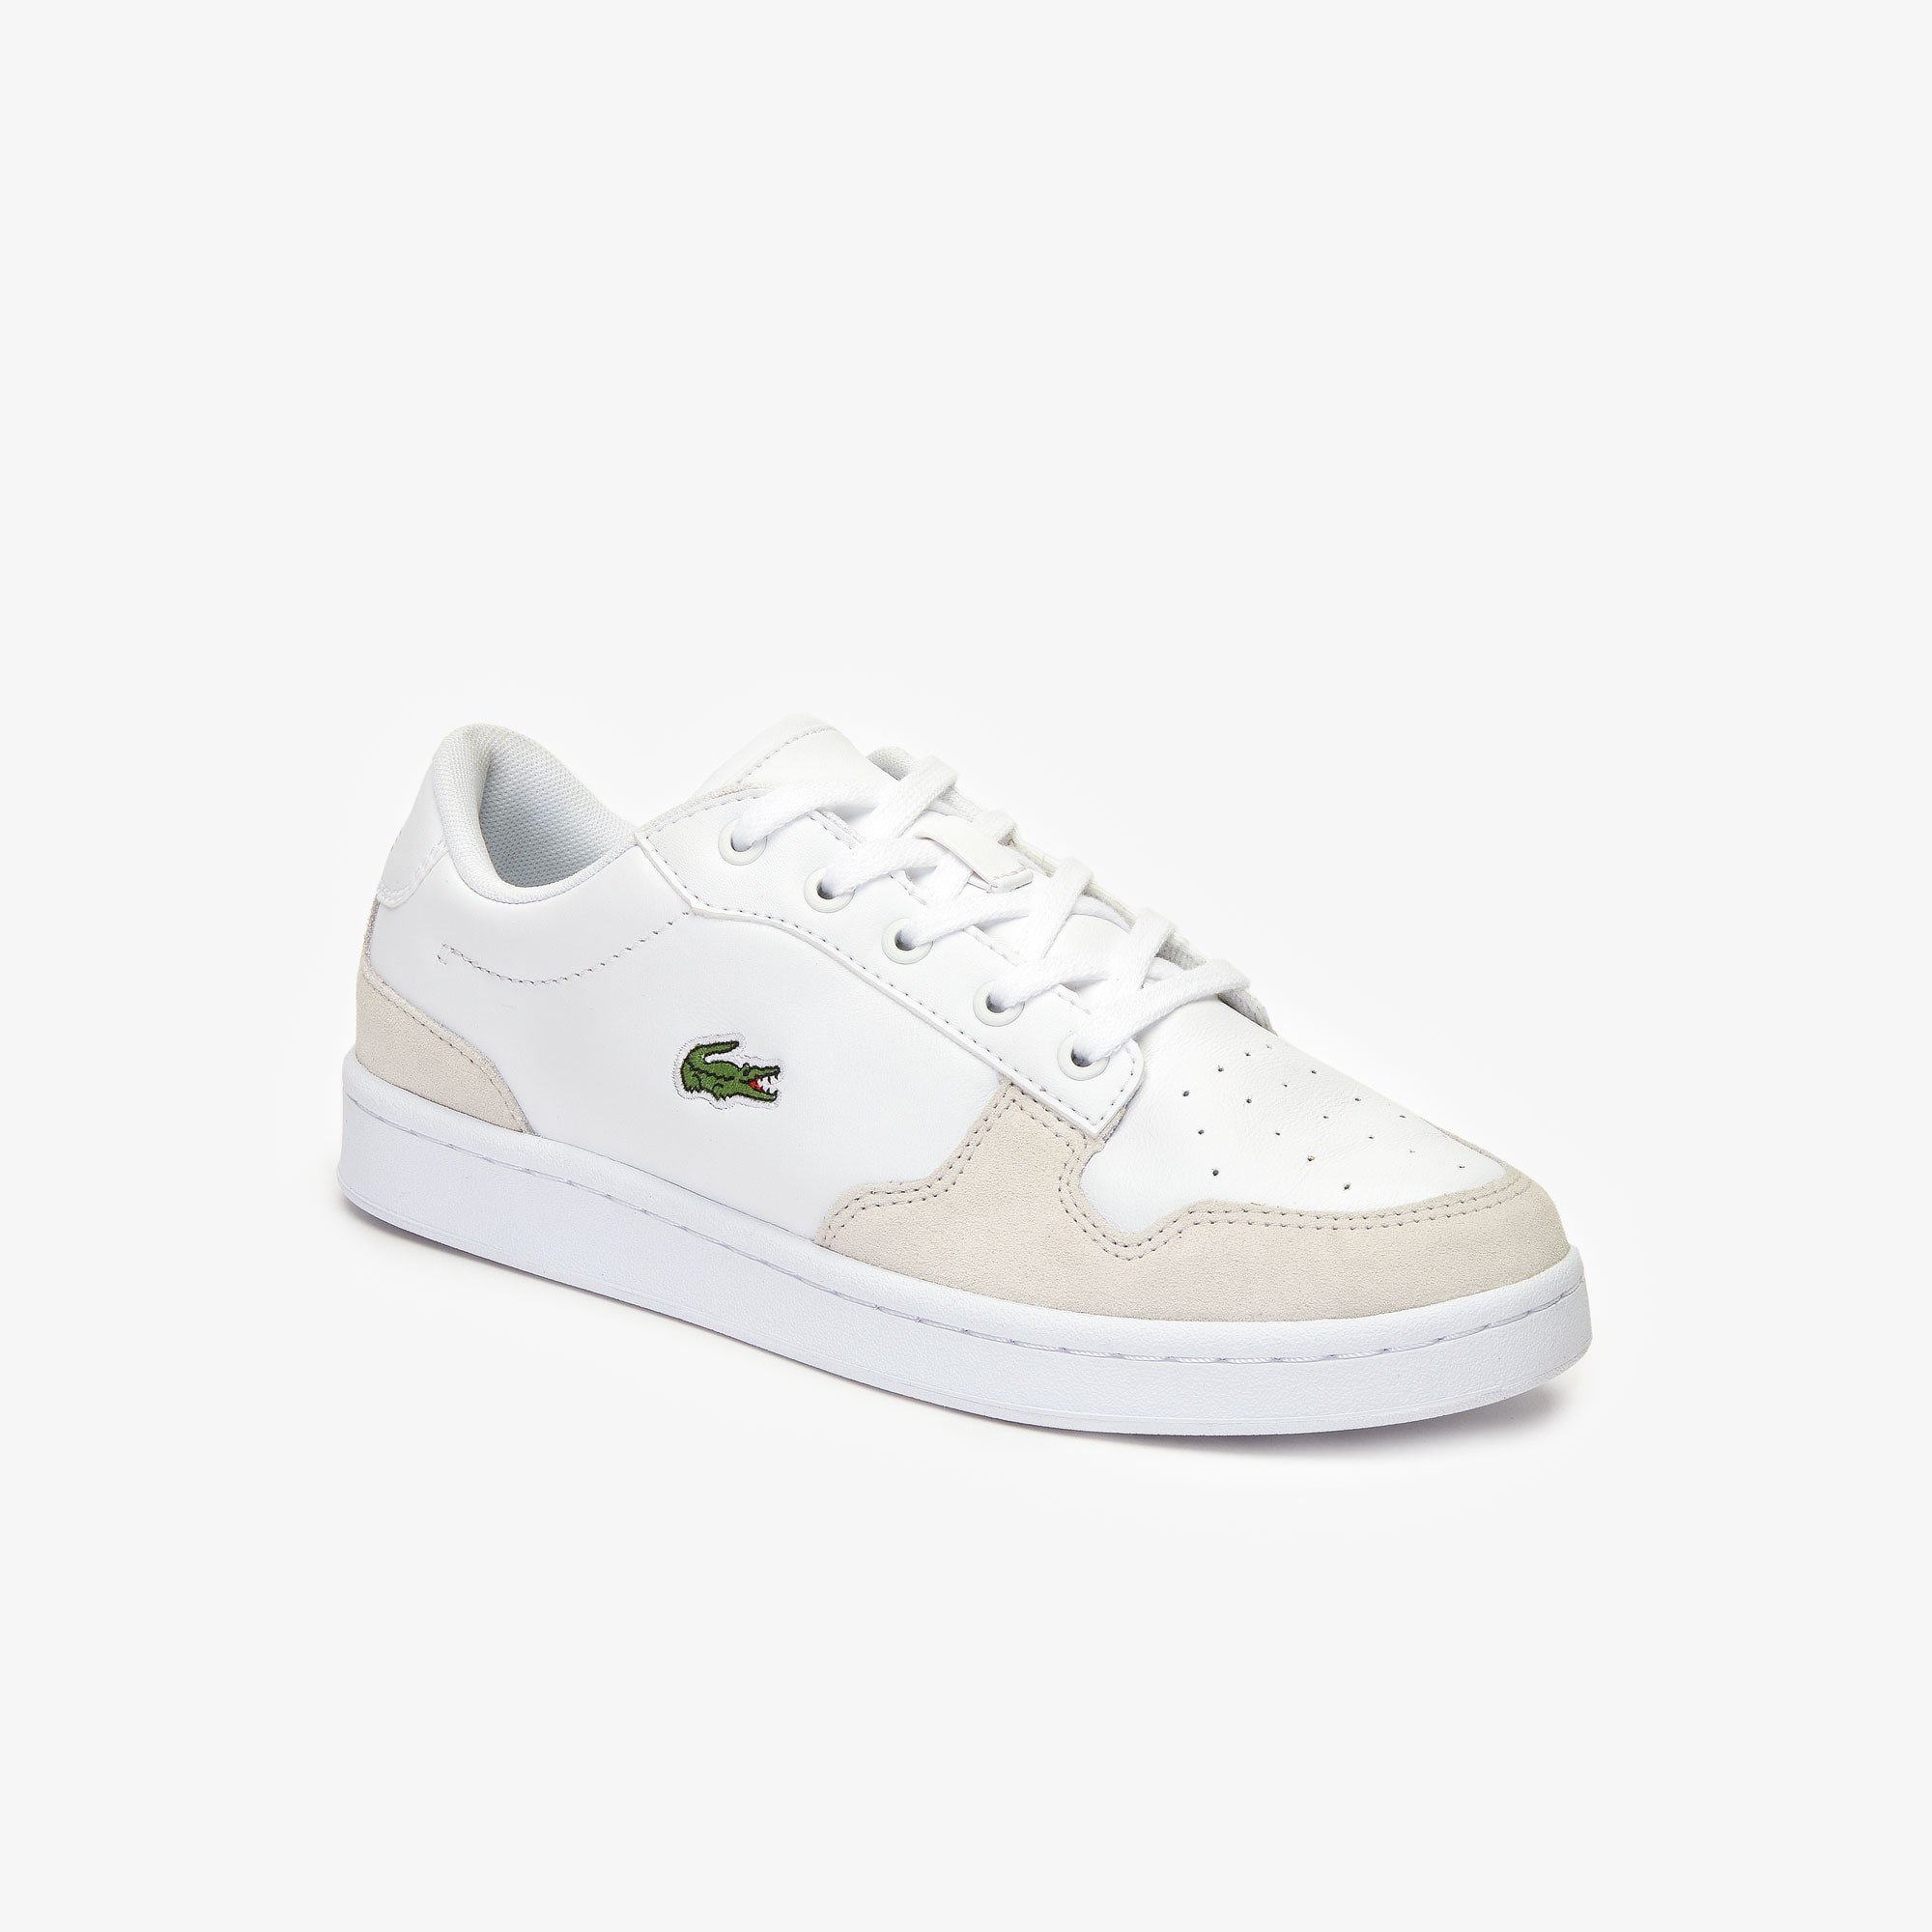 Lacoste Boots Men's Masters Cup Leather and Suede Sneakers